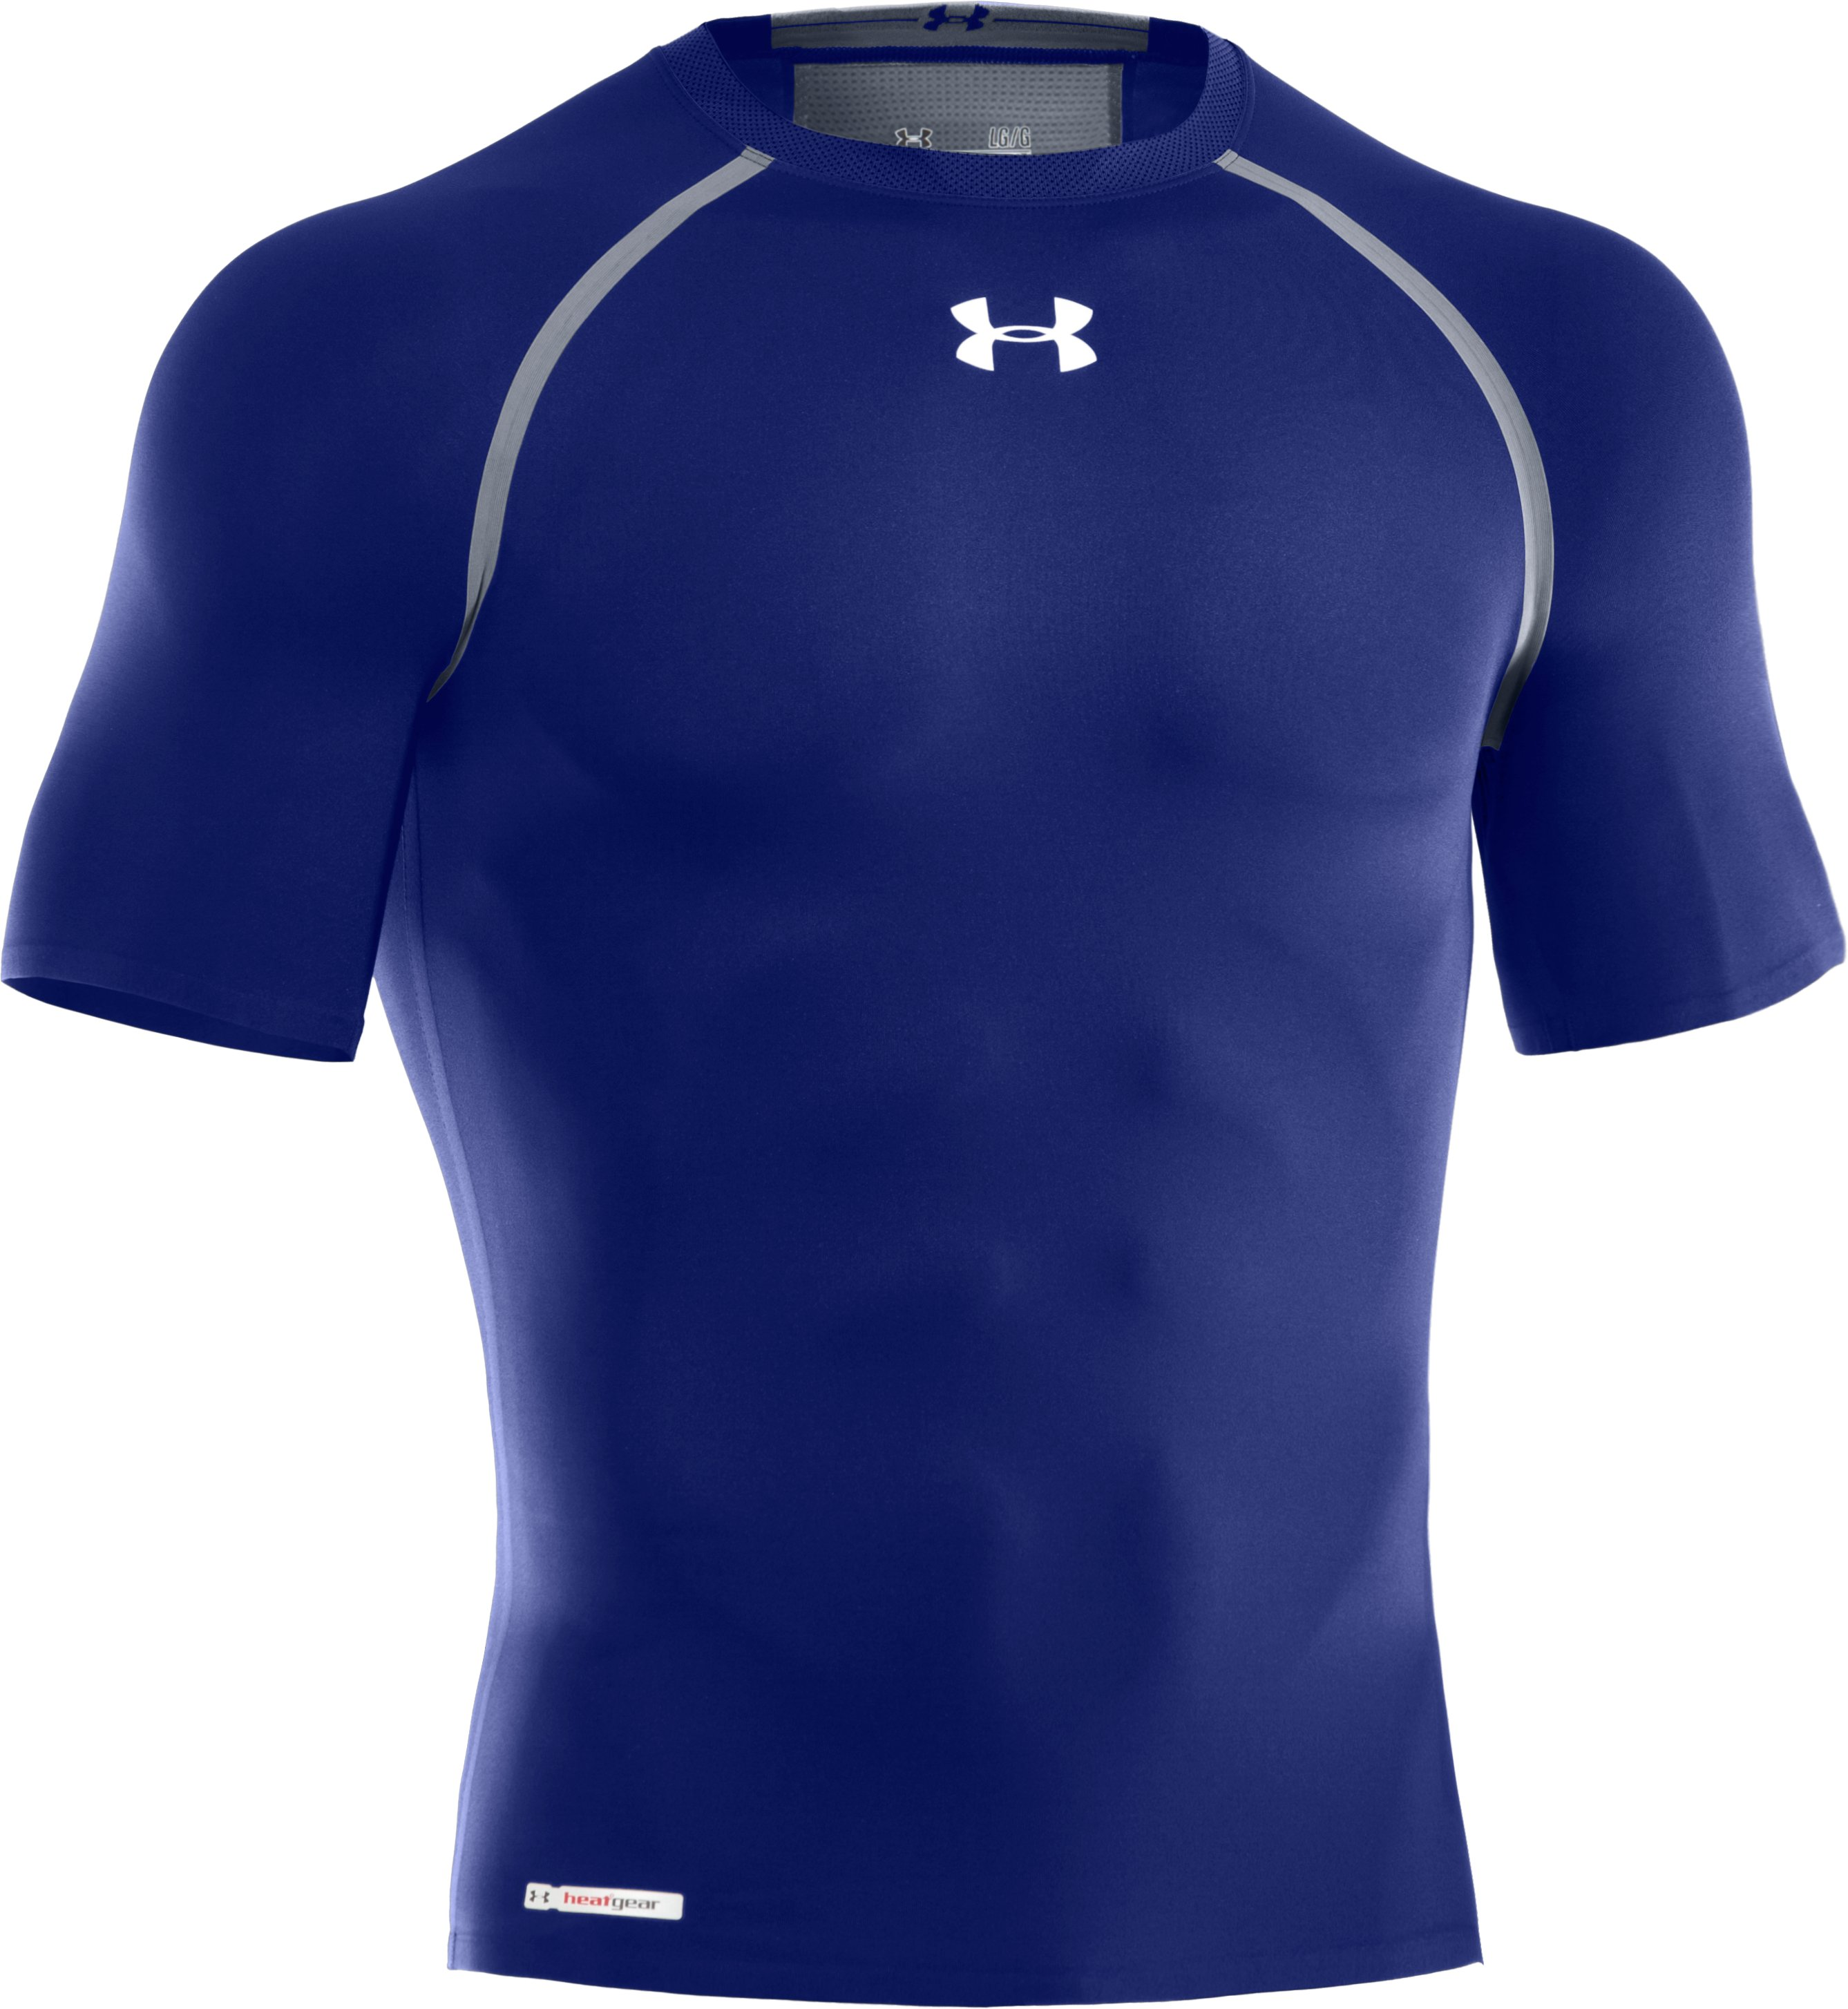 Men's HeatGear® Dynasty Vented Compression Short Sleeve, Royal, undefined